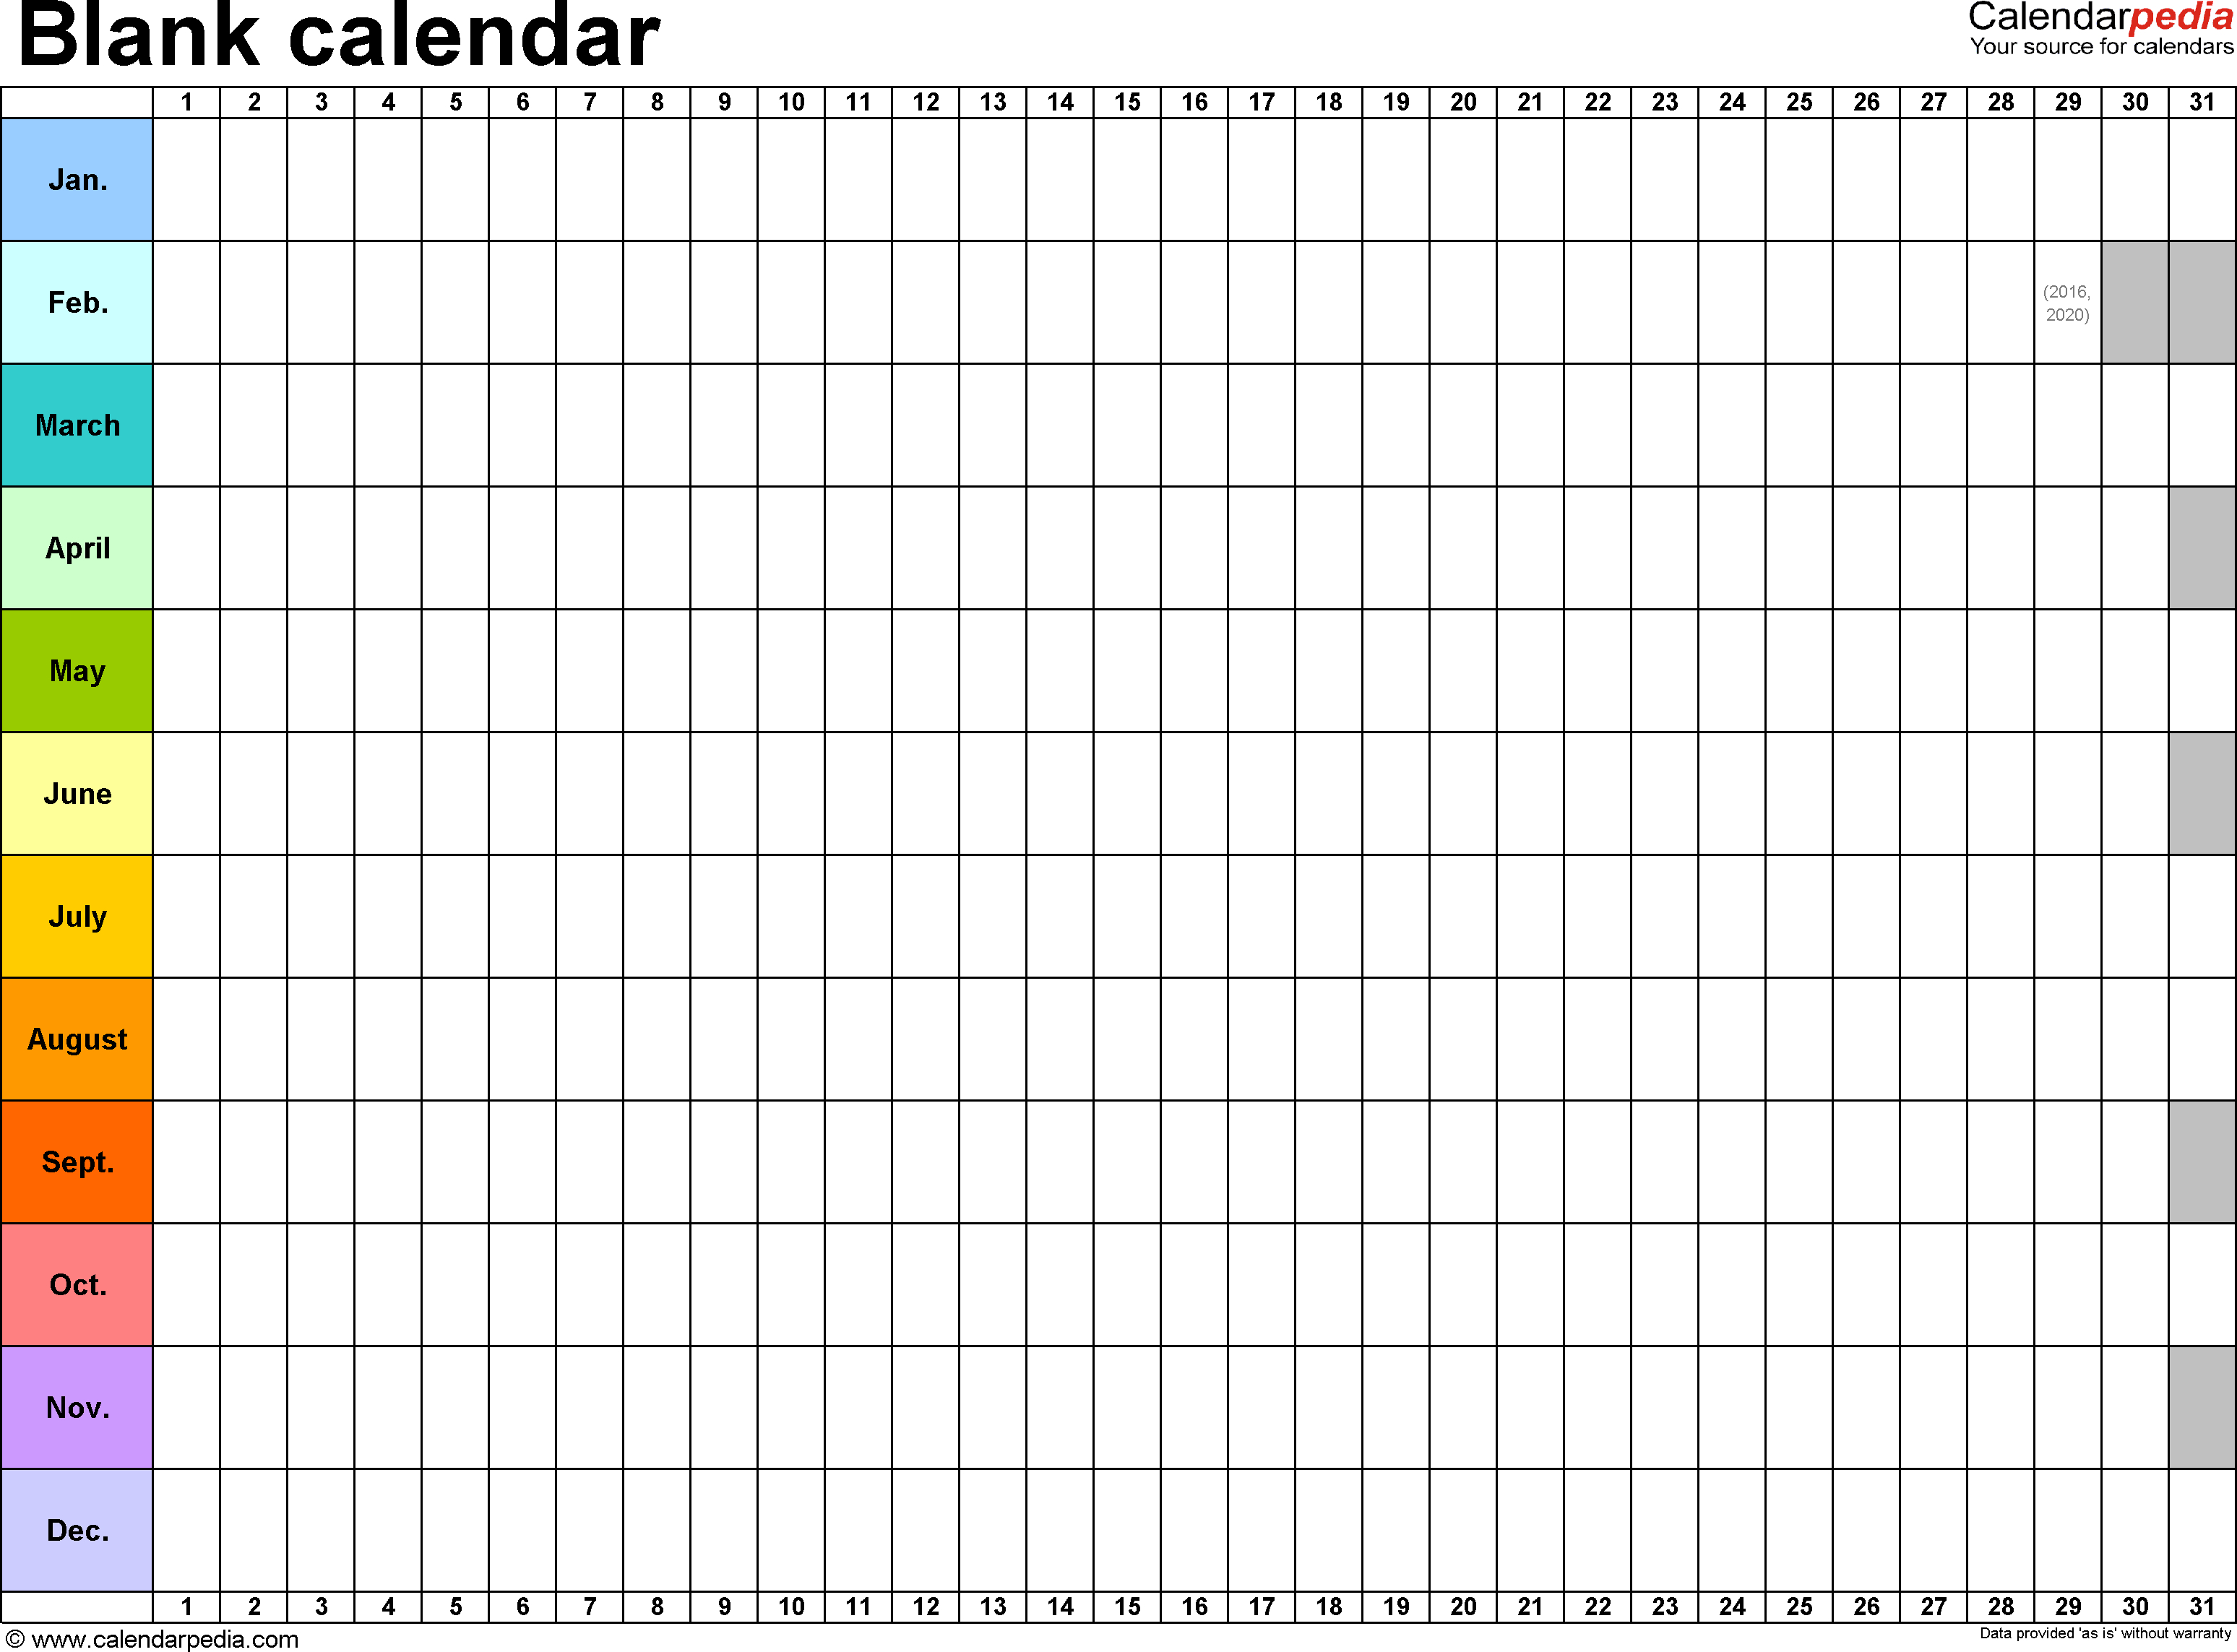 Blank Calendar - 9 Free Printable Microsoft Word Templates pertaining to Blank Monthly Calendar Template